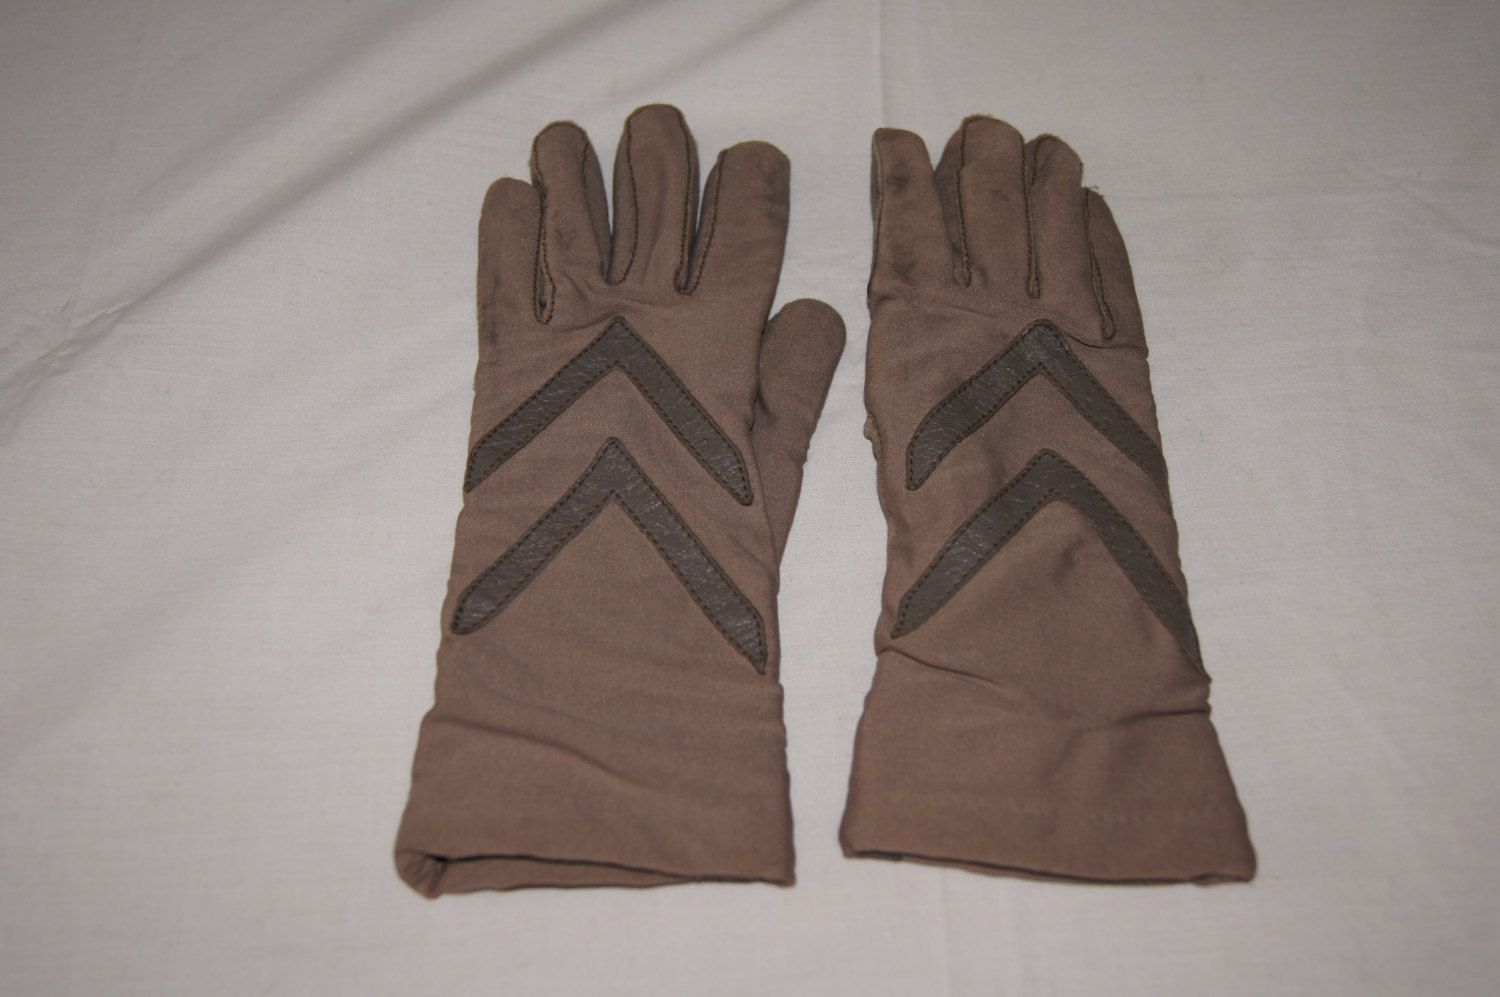 Driving gloves isotoner - Vintage 1980 S Tan Brown Aris Isotoner Gloves Driving Gloves By Themercerstreethouse On Etsy